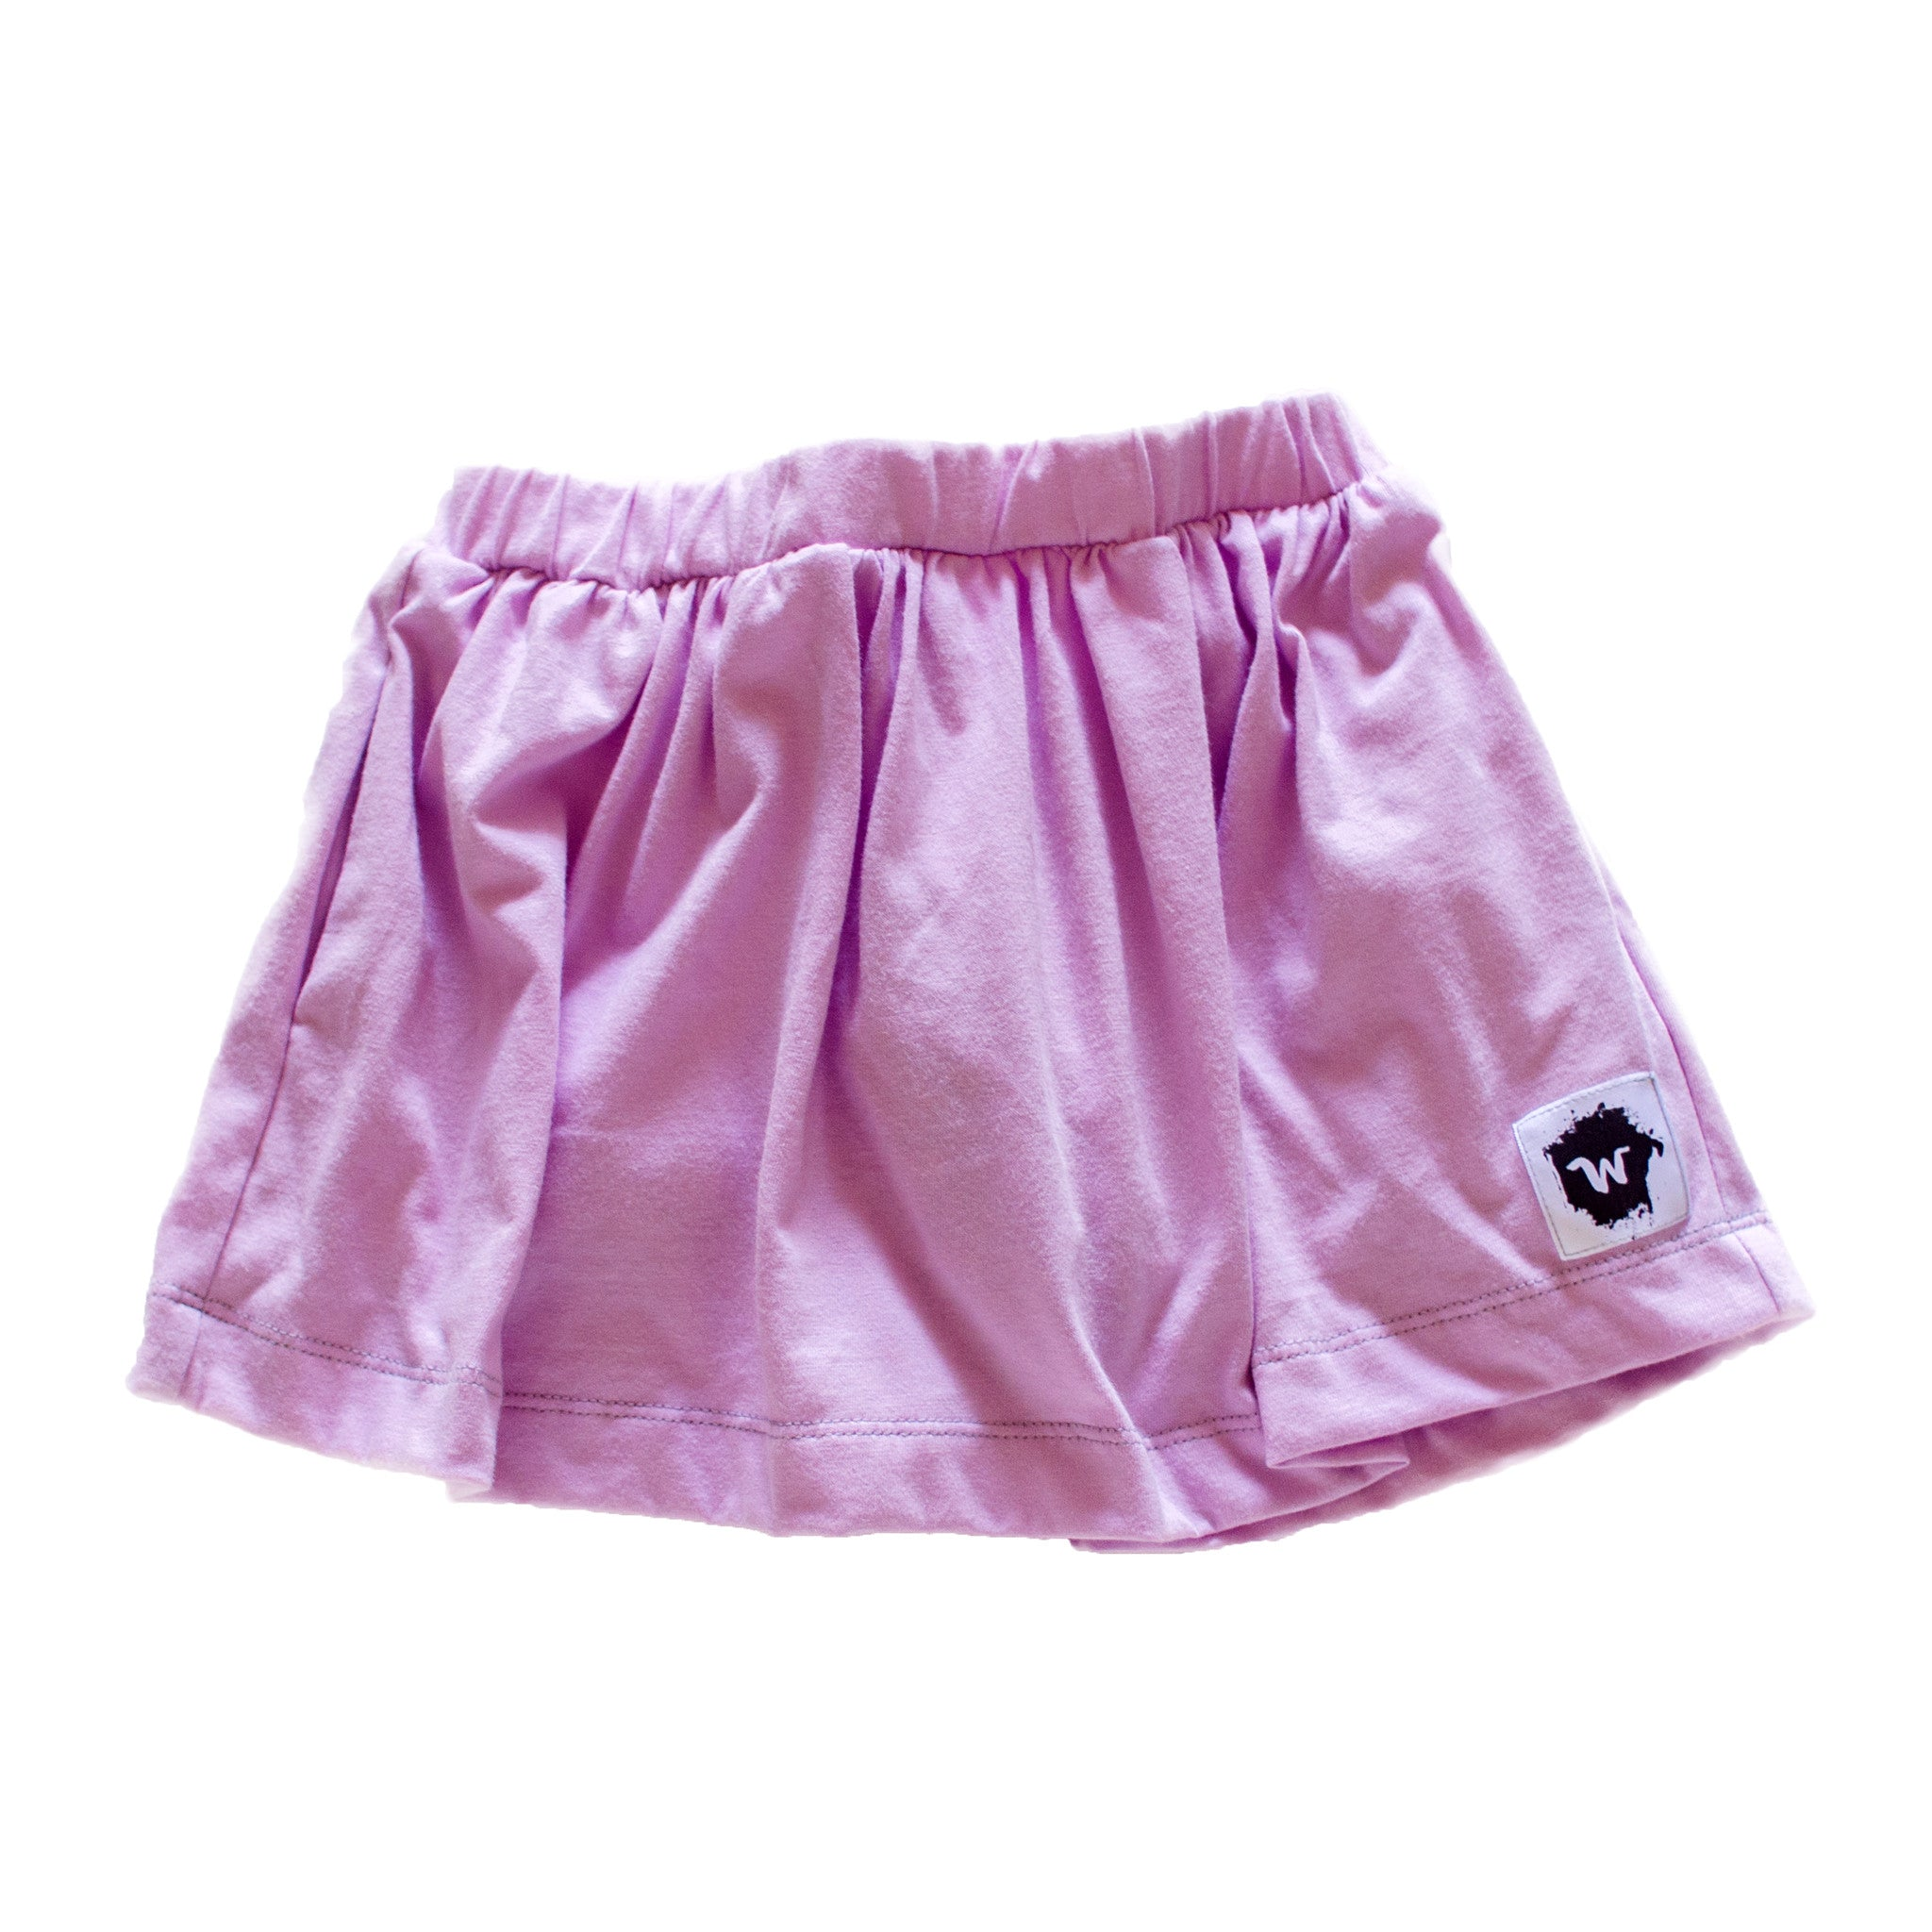 Orchid Play Skirt